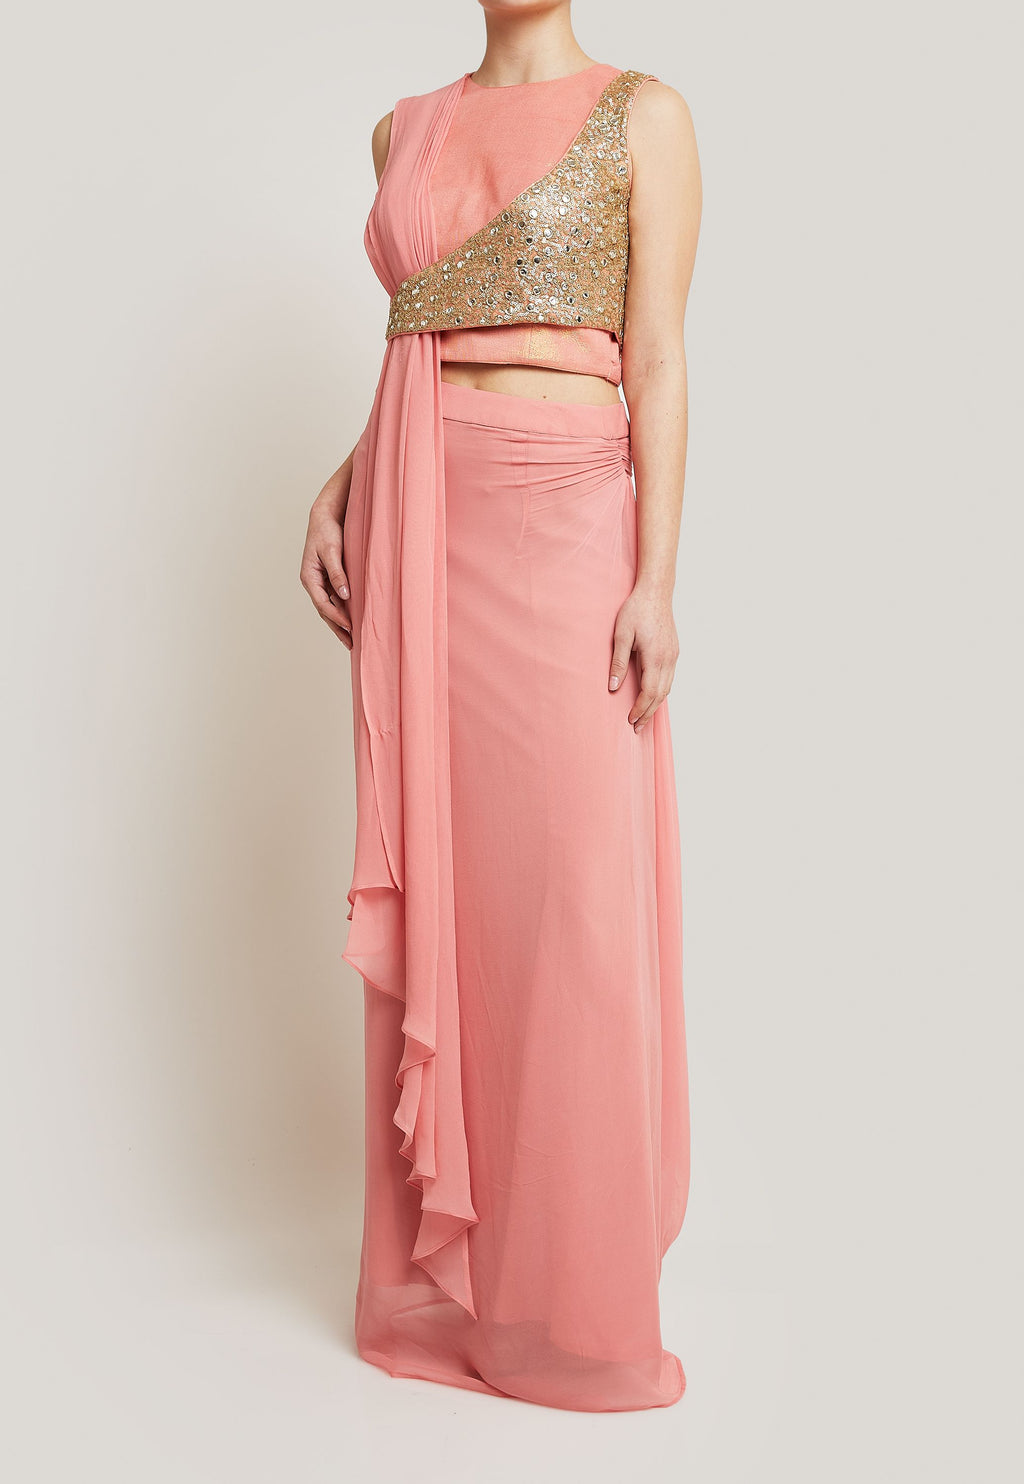 CORAL PINK STITCHED SAREE AND BLOUSE WITH A UNIQUE SEQUINED OVERLAY